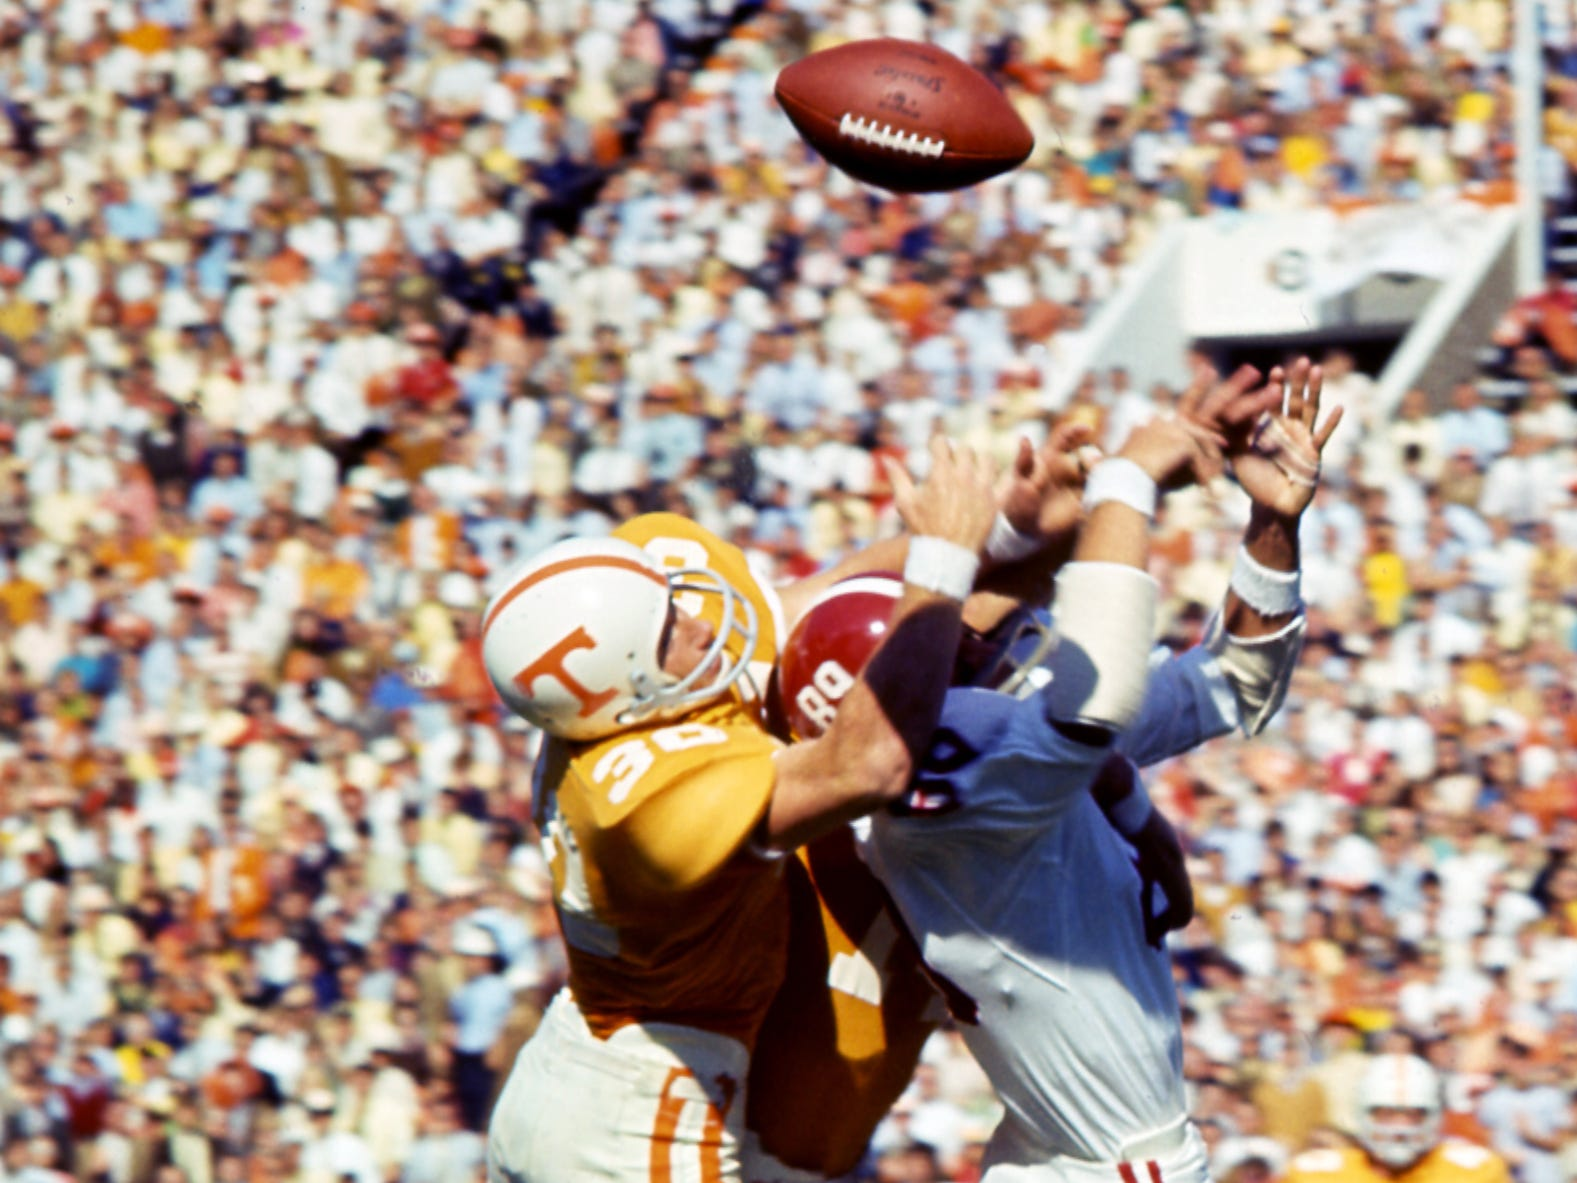 Tennessee defensive backs Bill Young (14) and Jim Weatherford (30) smacks Alabama receiver Conrad Fowler (89) to break up a pass near the goal line before 63,392 fans at Neyland Stadium Oct. 19, 1968.